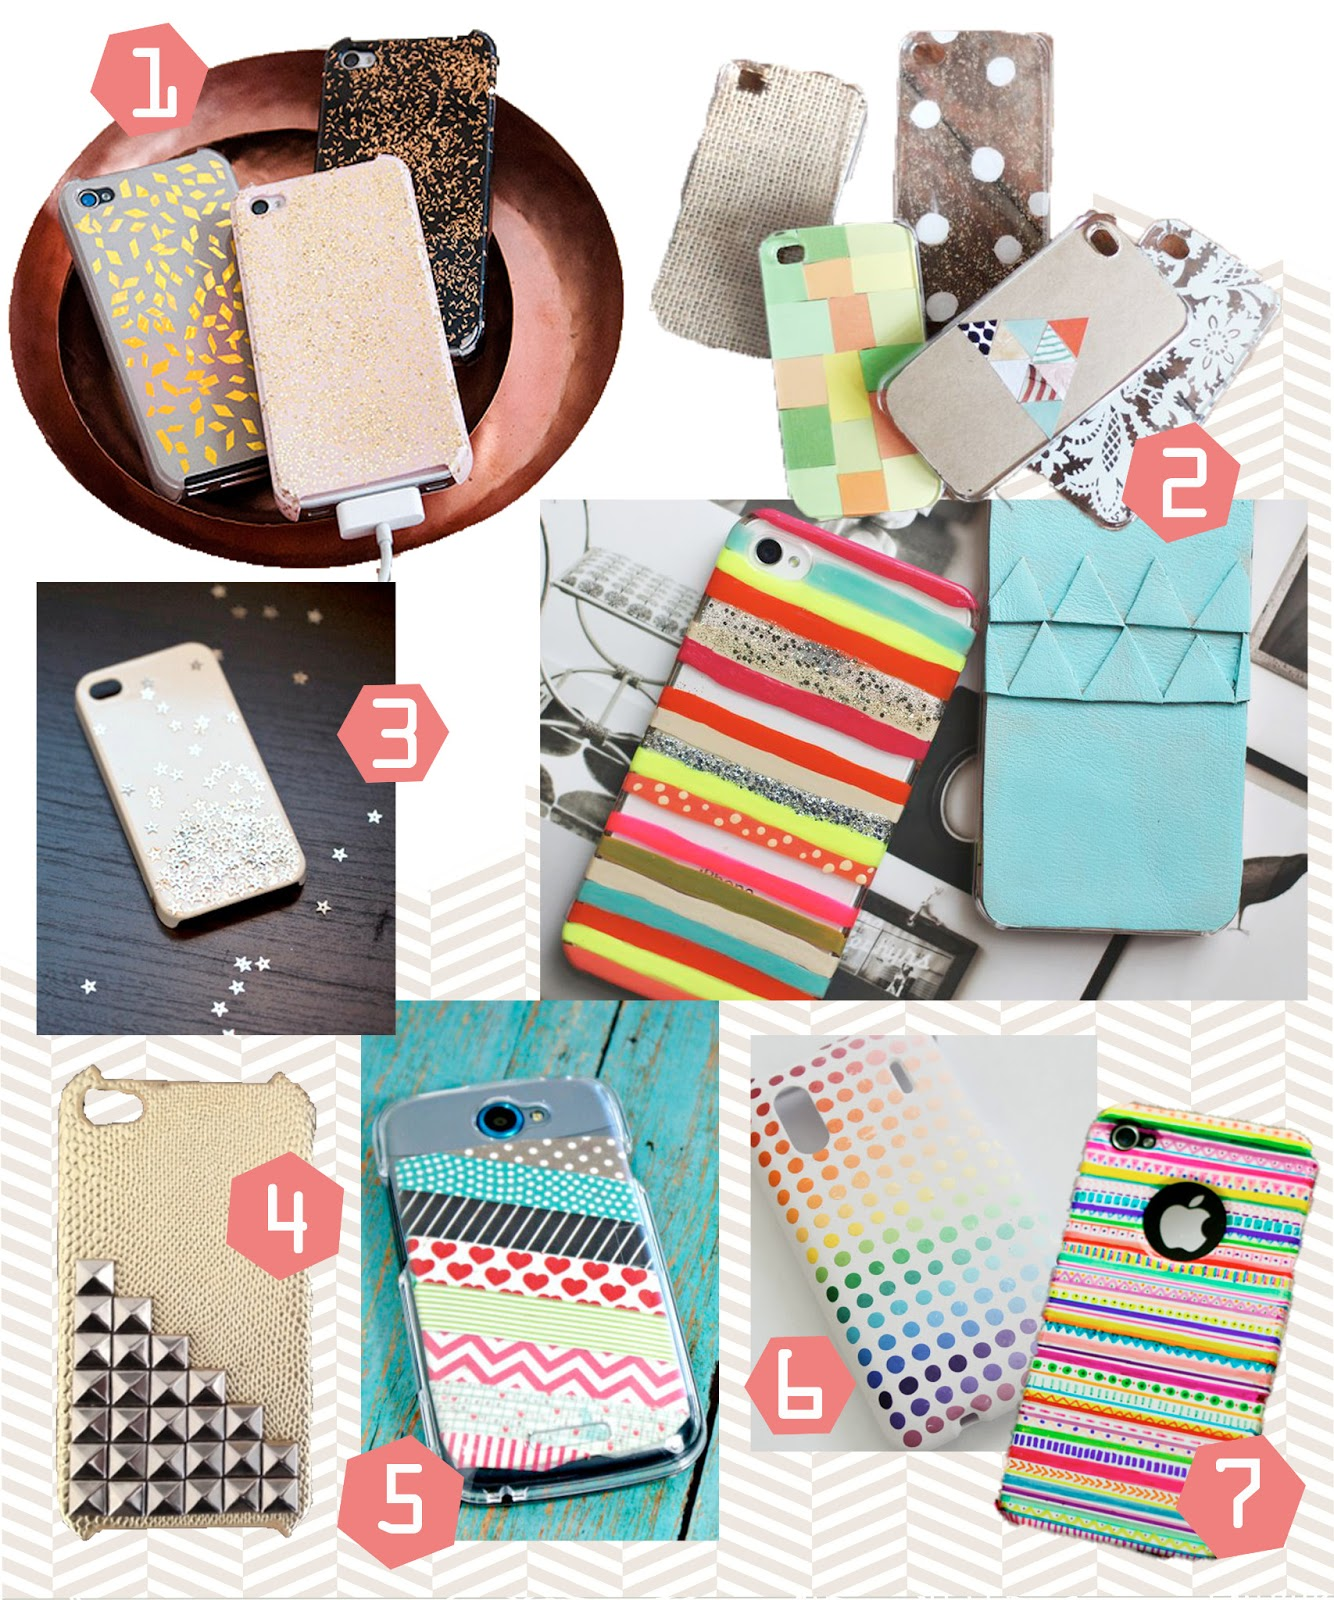 Live it love it make it make it diy phone cases for How to make phone cases at home